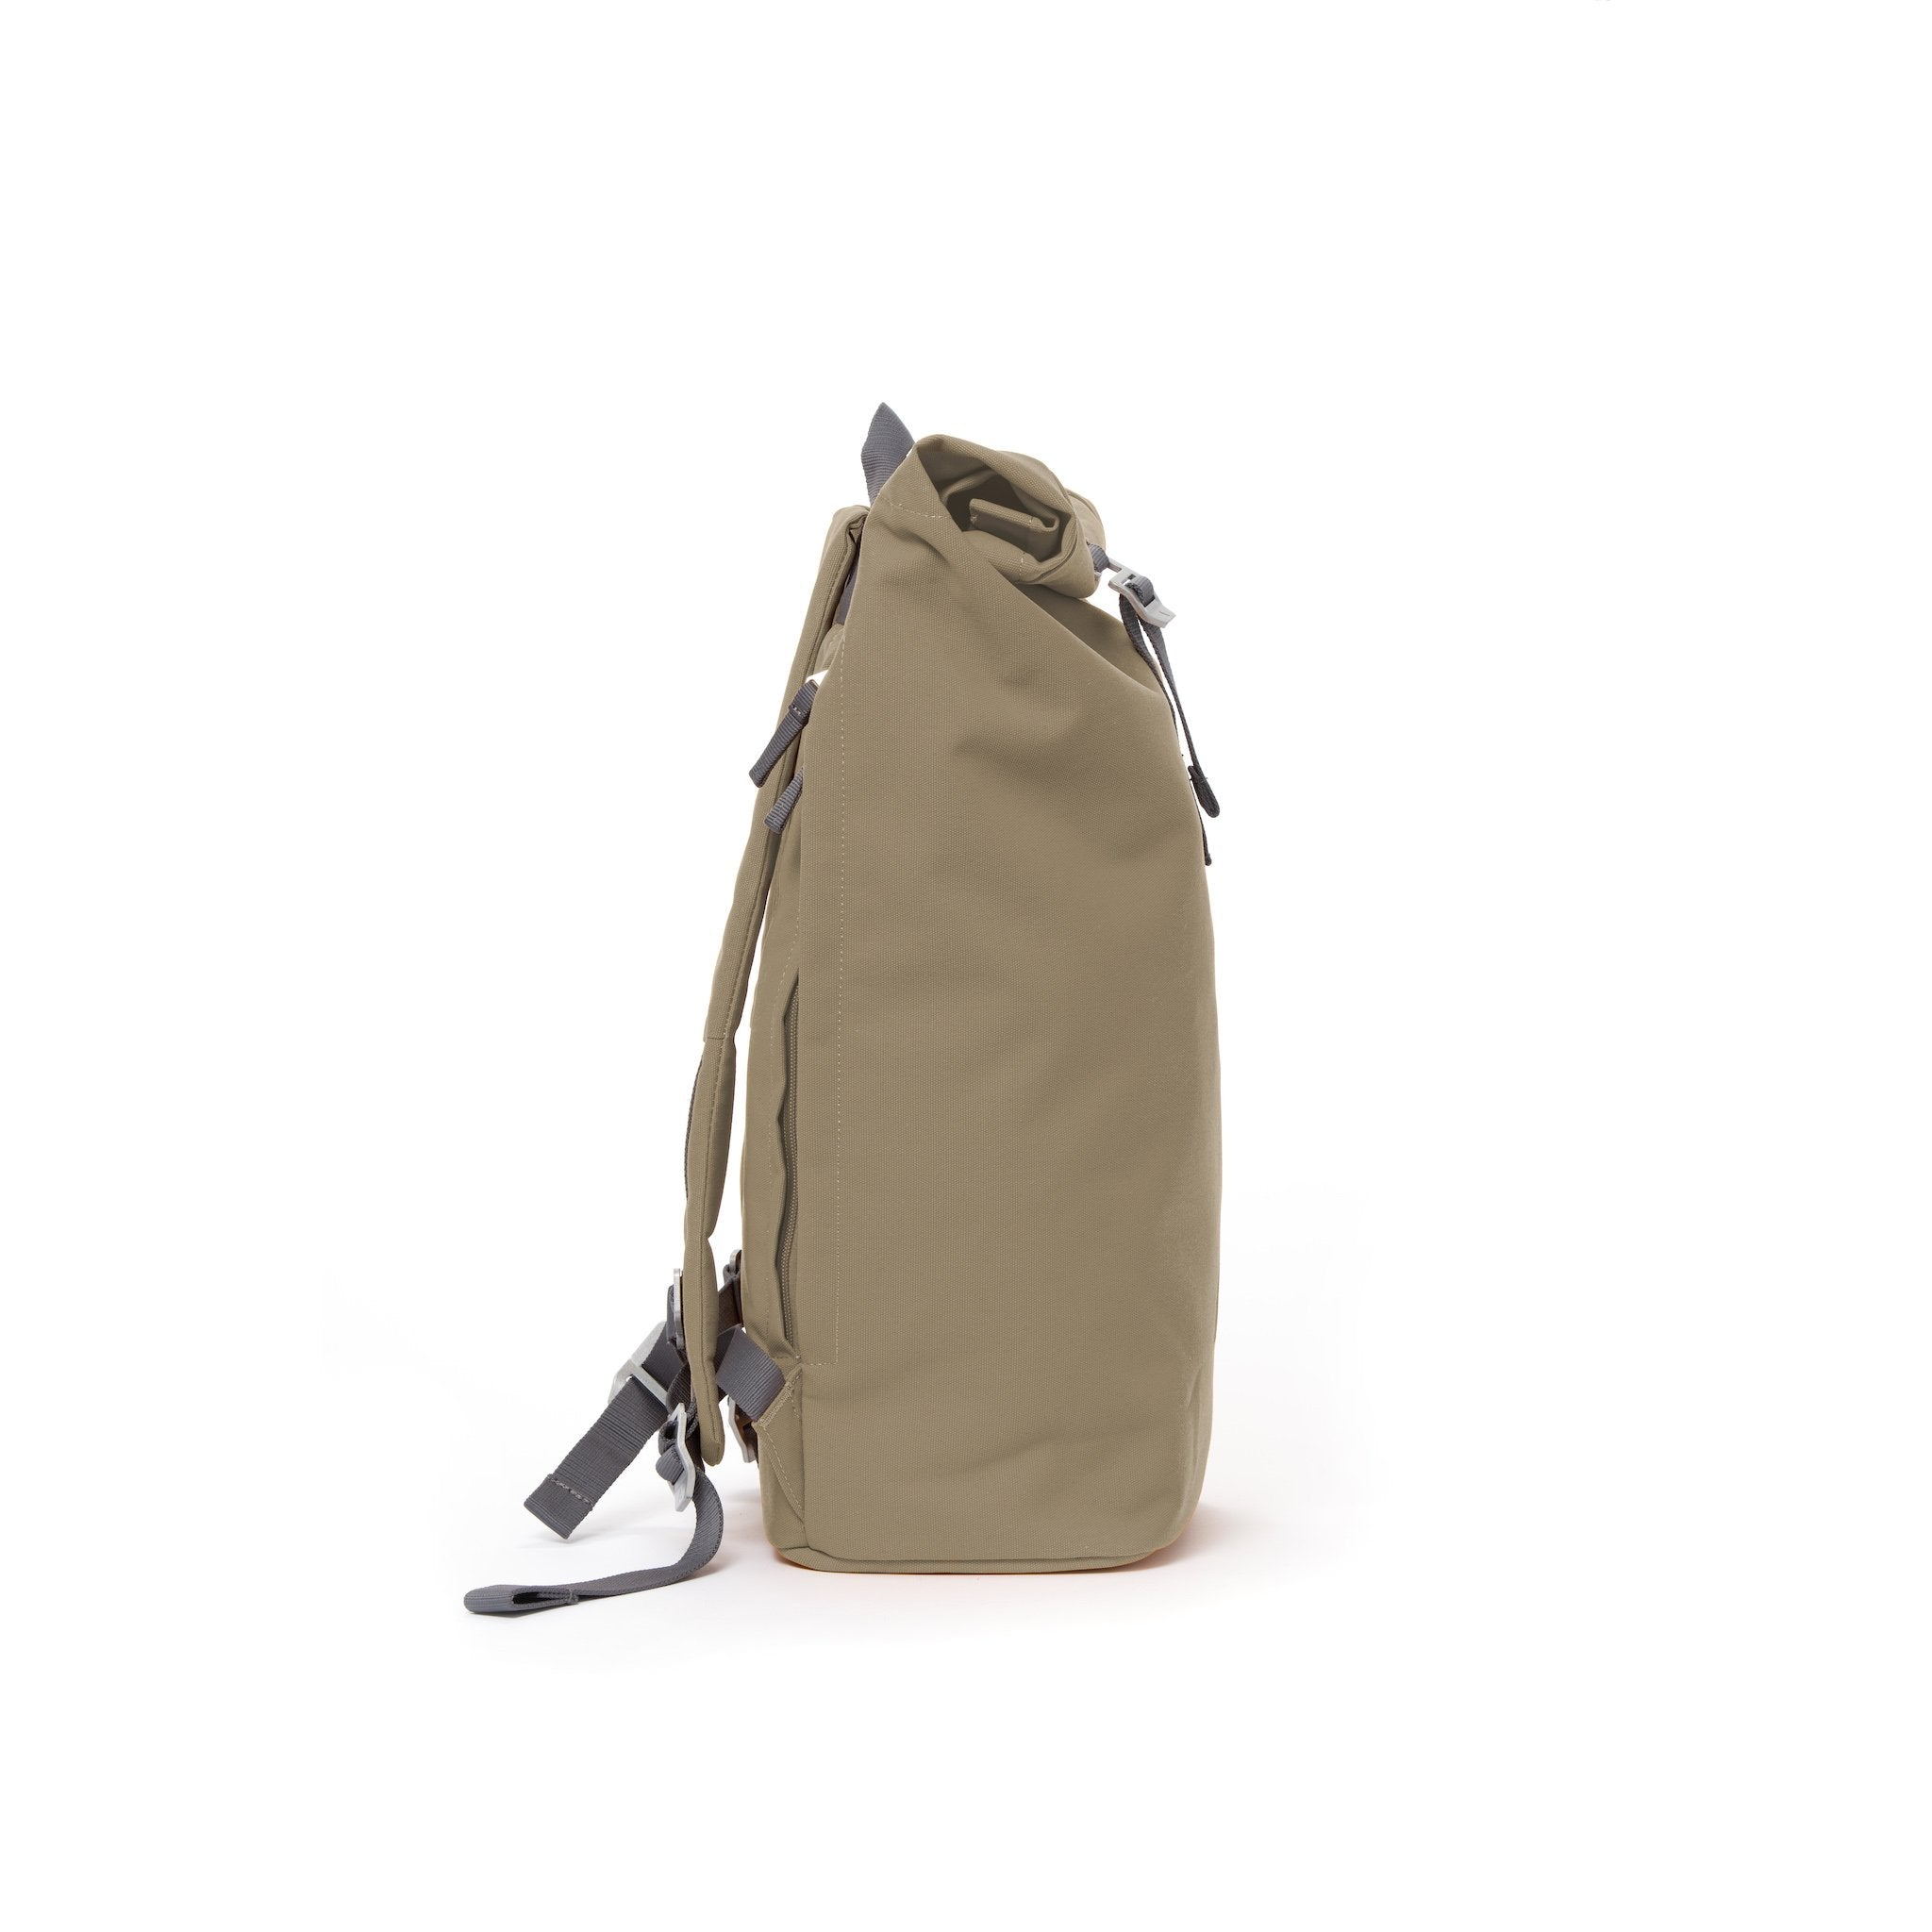 Khaki waterproof canvas men's rolltop backpack.